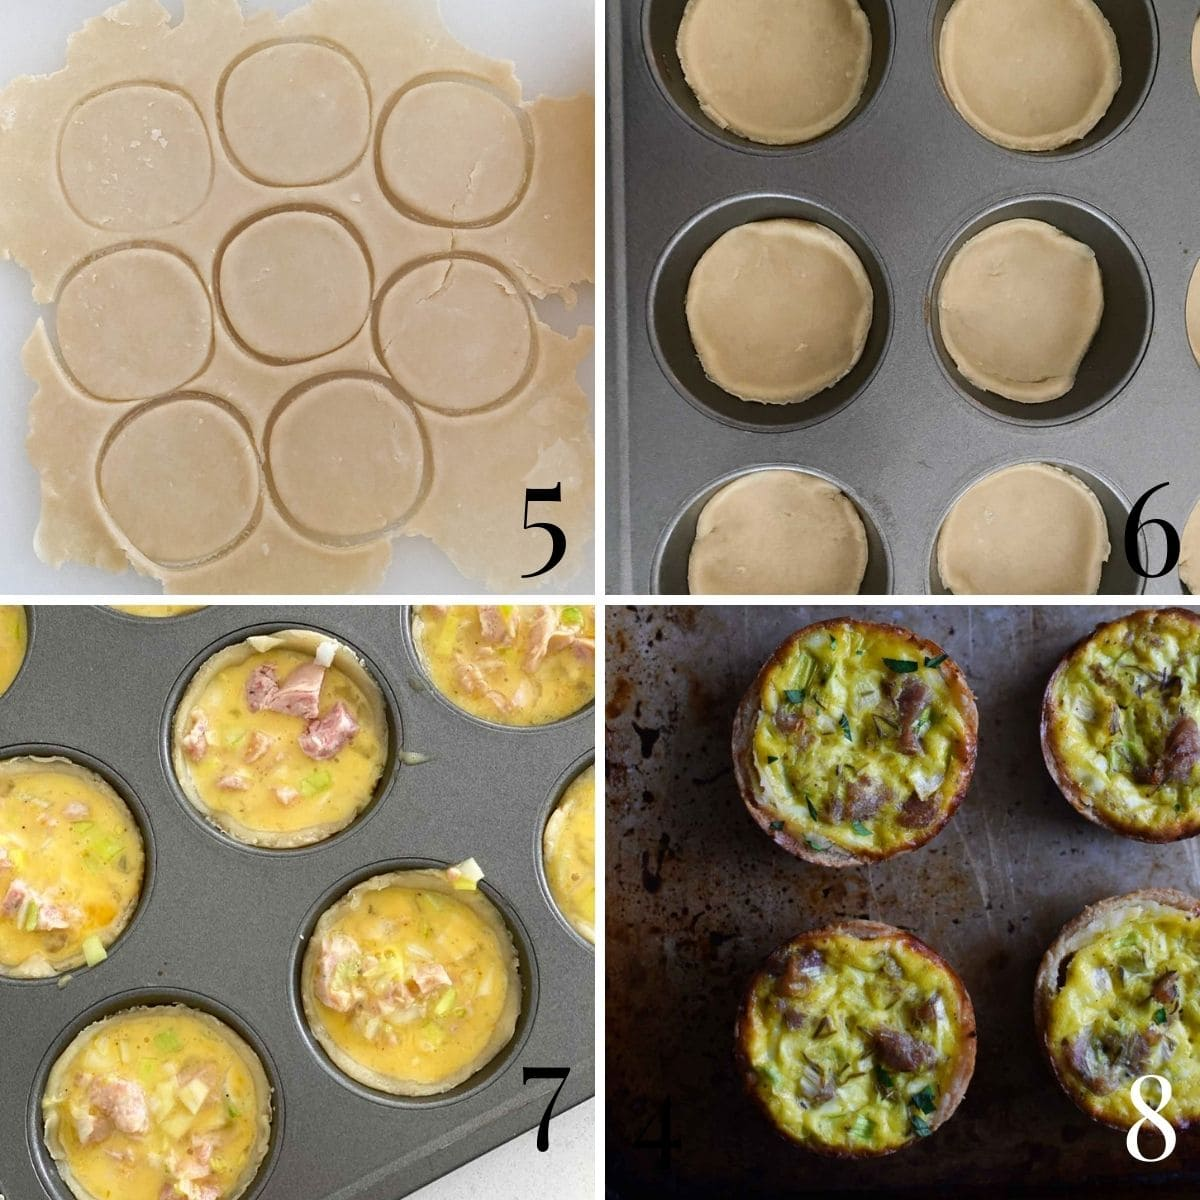 A step by step process shot of cutting quiche dough, fitting it into a muffin tin, pouring in the egg filling, and the baked final product